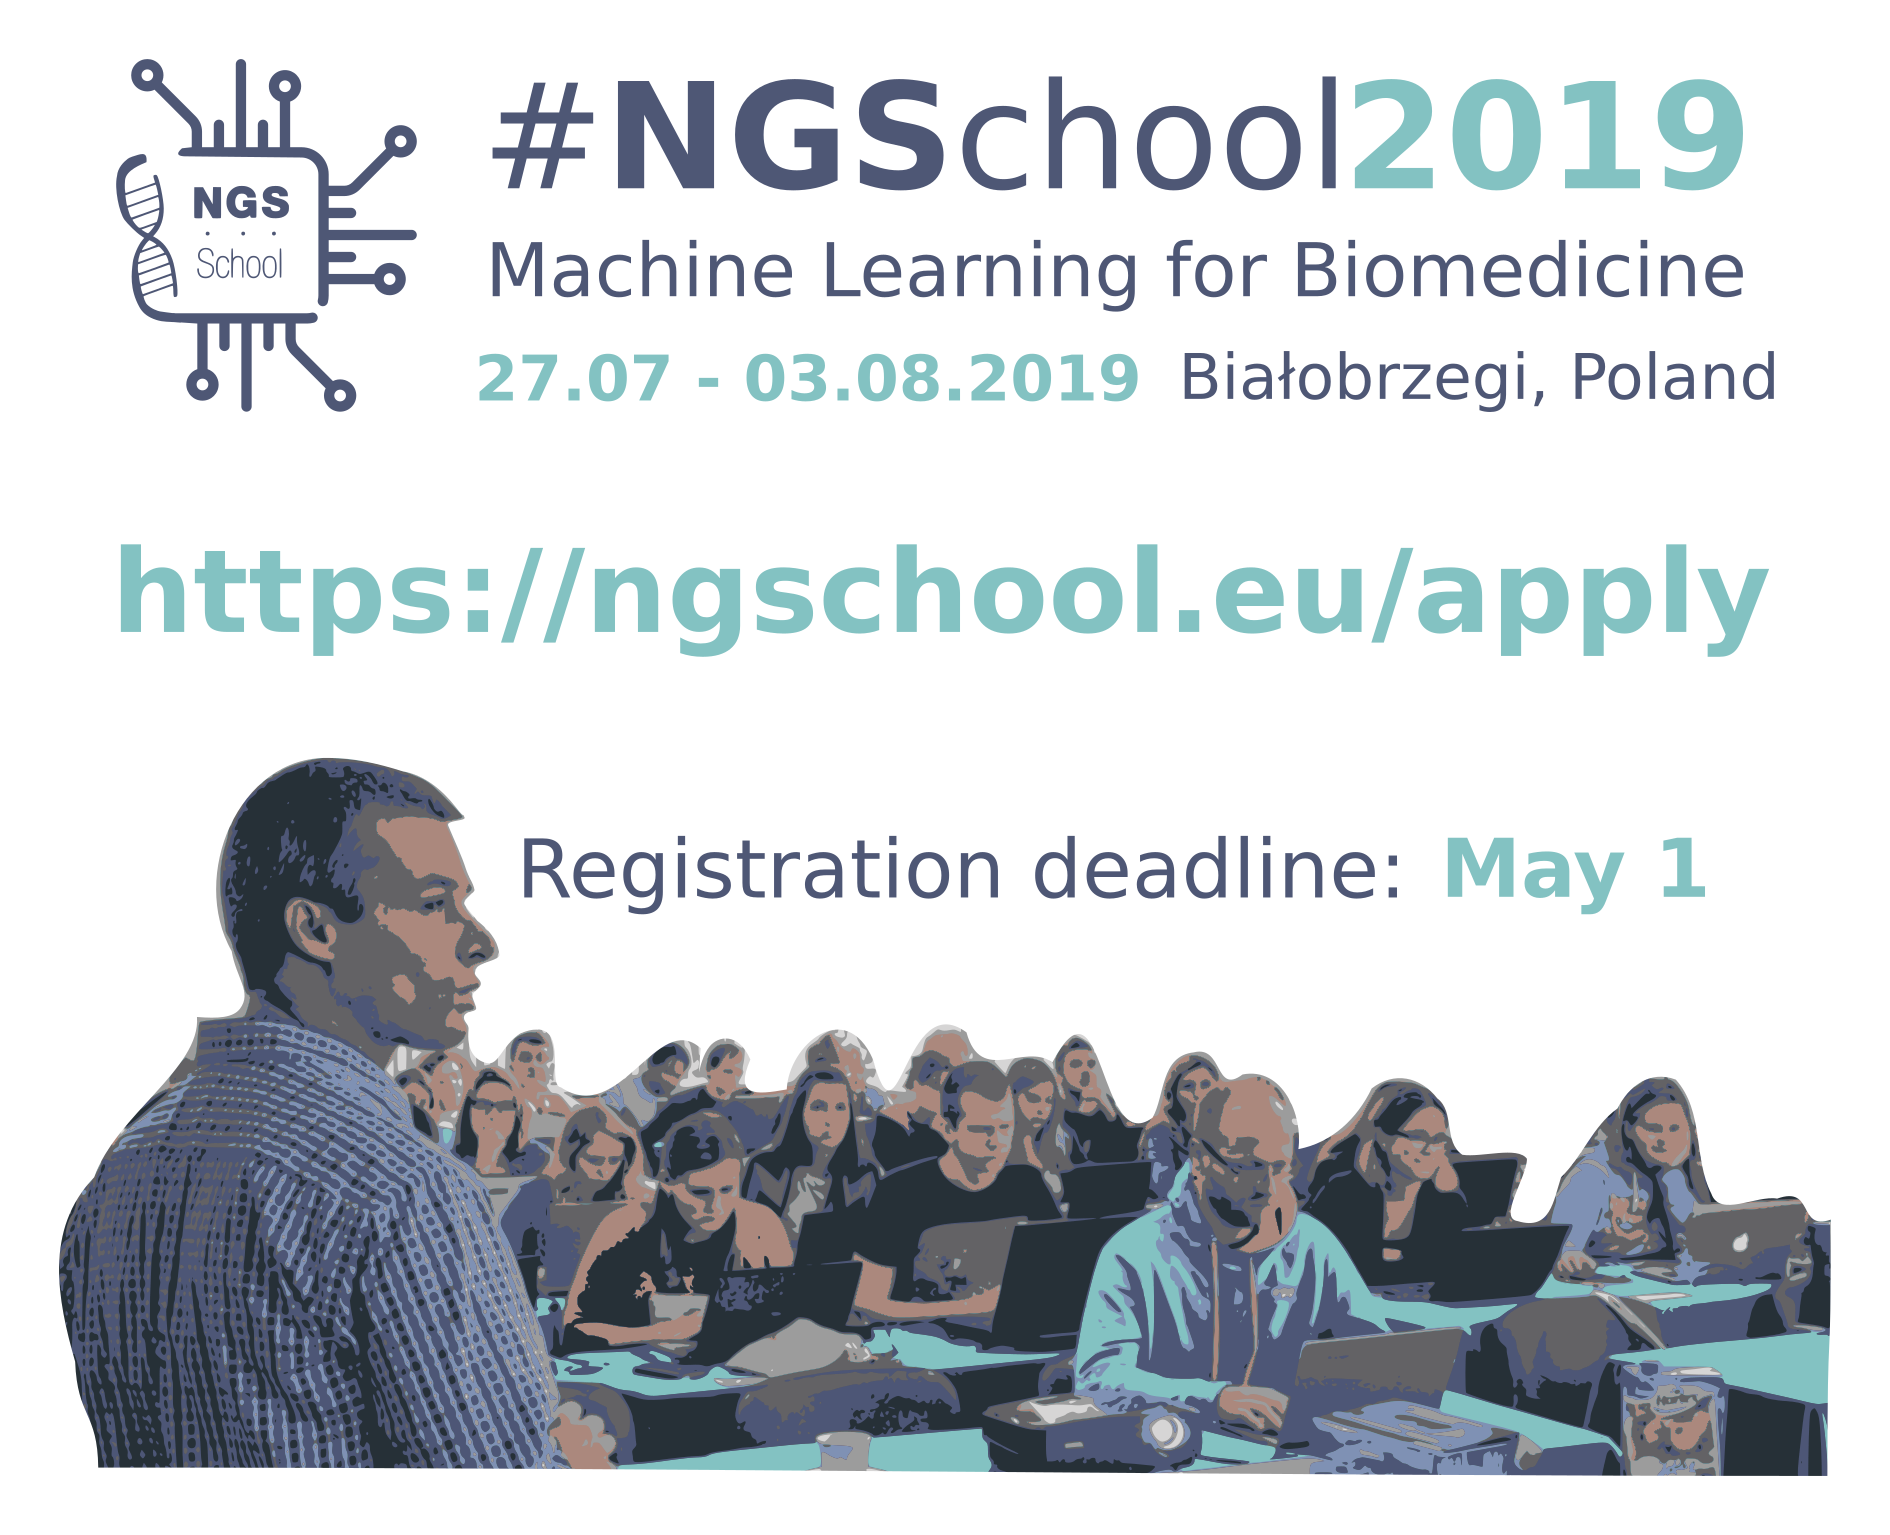 NGSchool promotion image